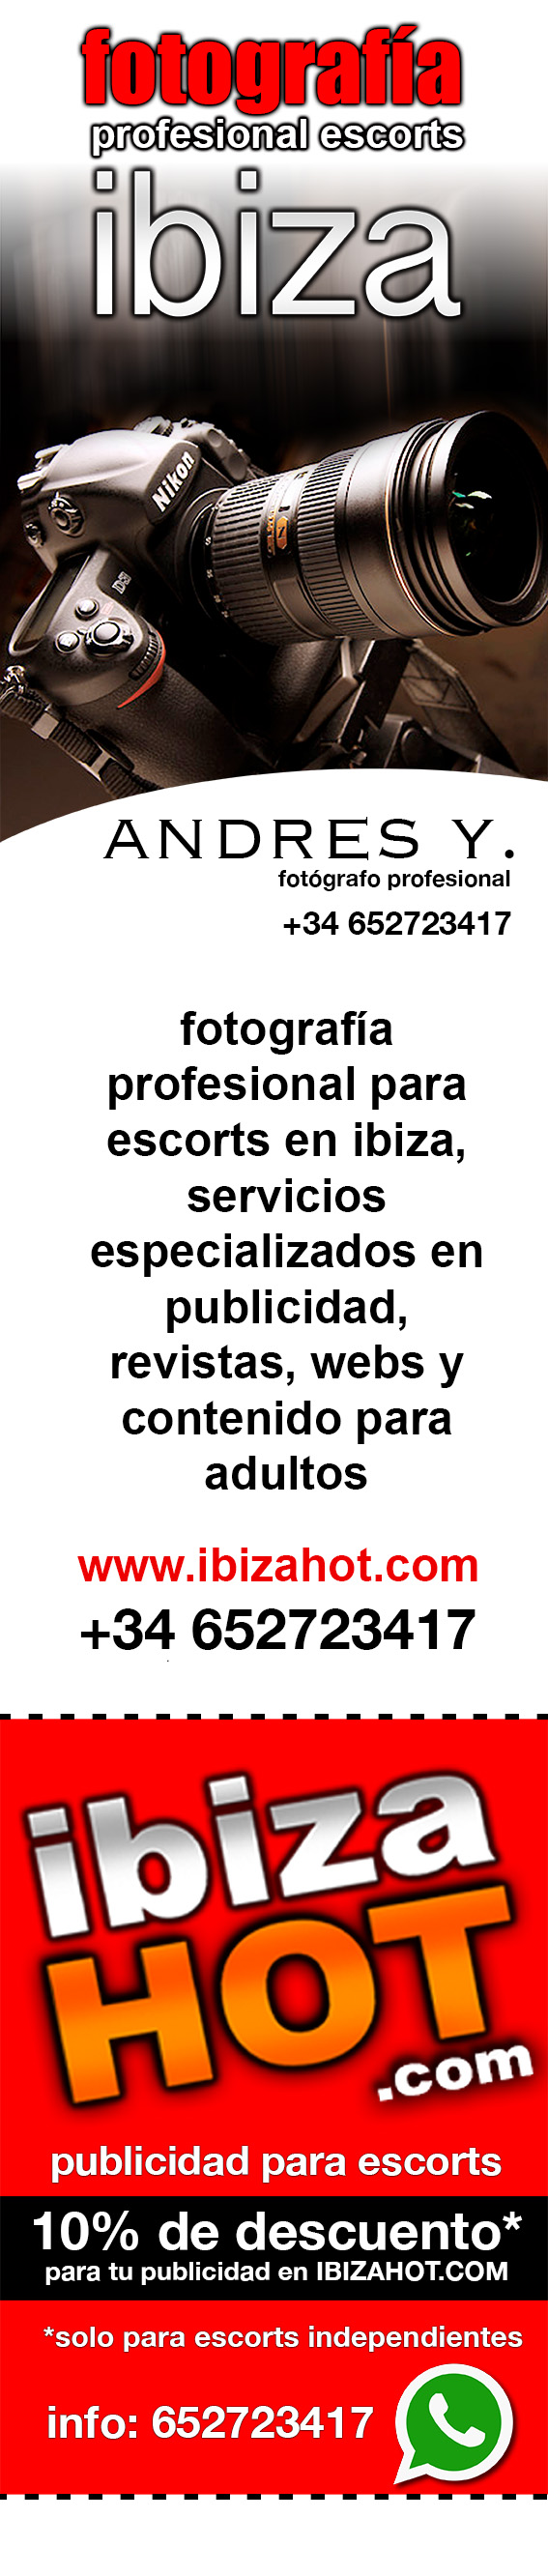 IBIZAHOT.COM - escorts ibiza, escort in ibiza, ibiza escorts, girls escort ibiza, putas en ibiza, chicas escort, putas en ibiza, escorts in ibiza, sex contacts ibiza, hookers in ibiza, sex ladies ibiza, callgirls ibiza